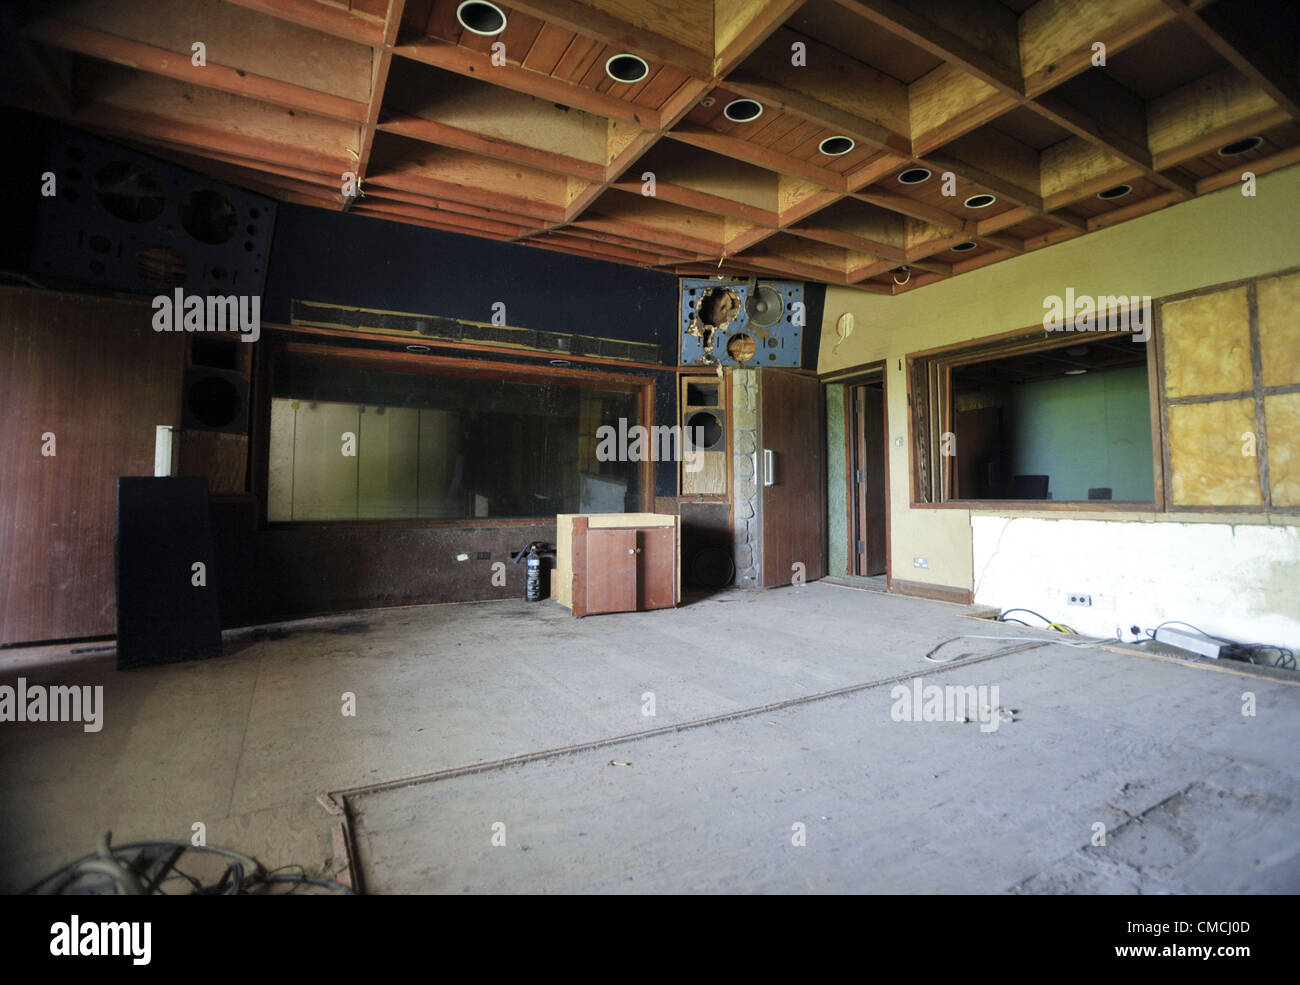 June 22, 2012 - Montserrat, UNITED KINGDOM - Although abandoned, the AIR studios recording room which once hosted - Stock Image